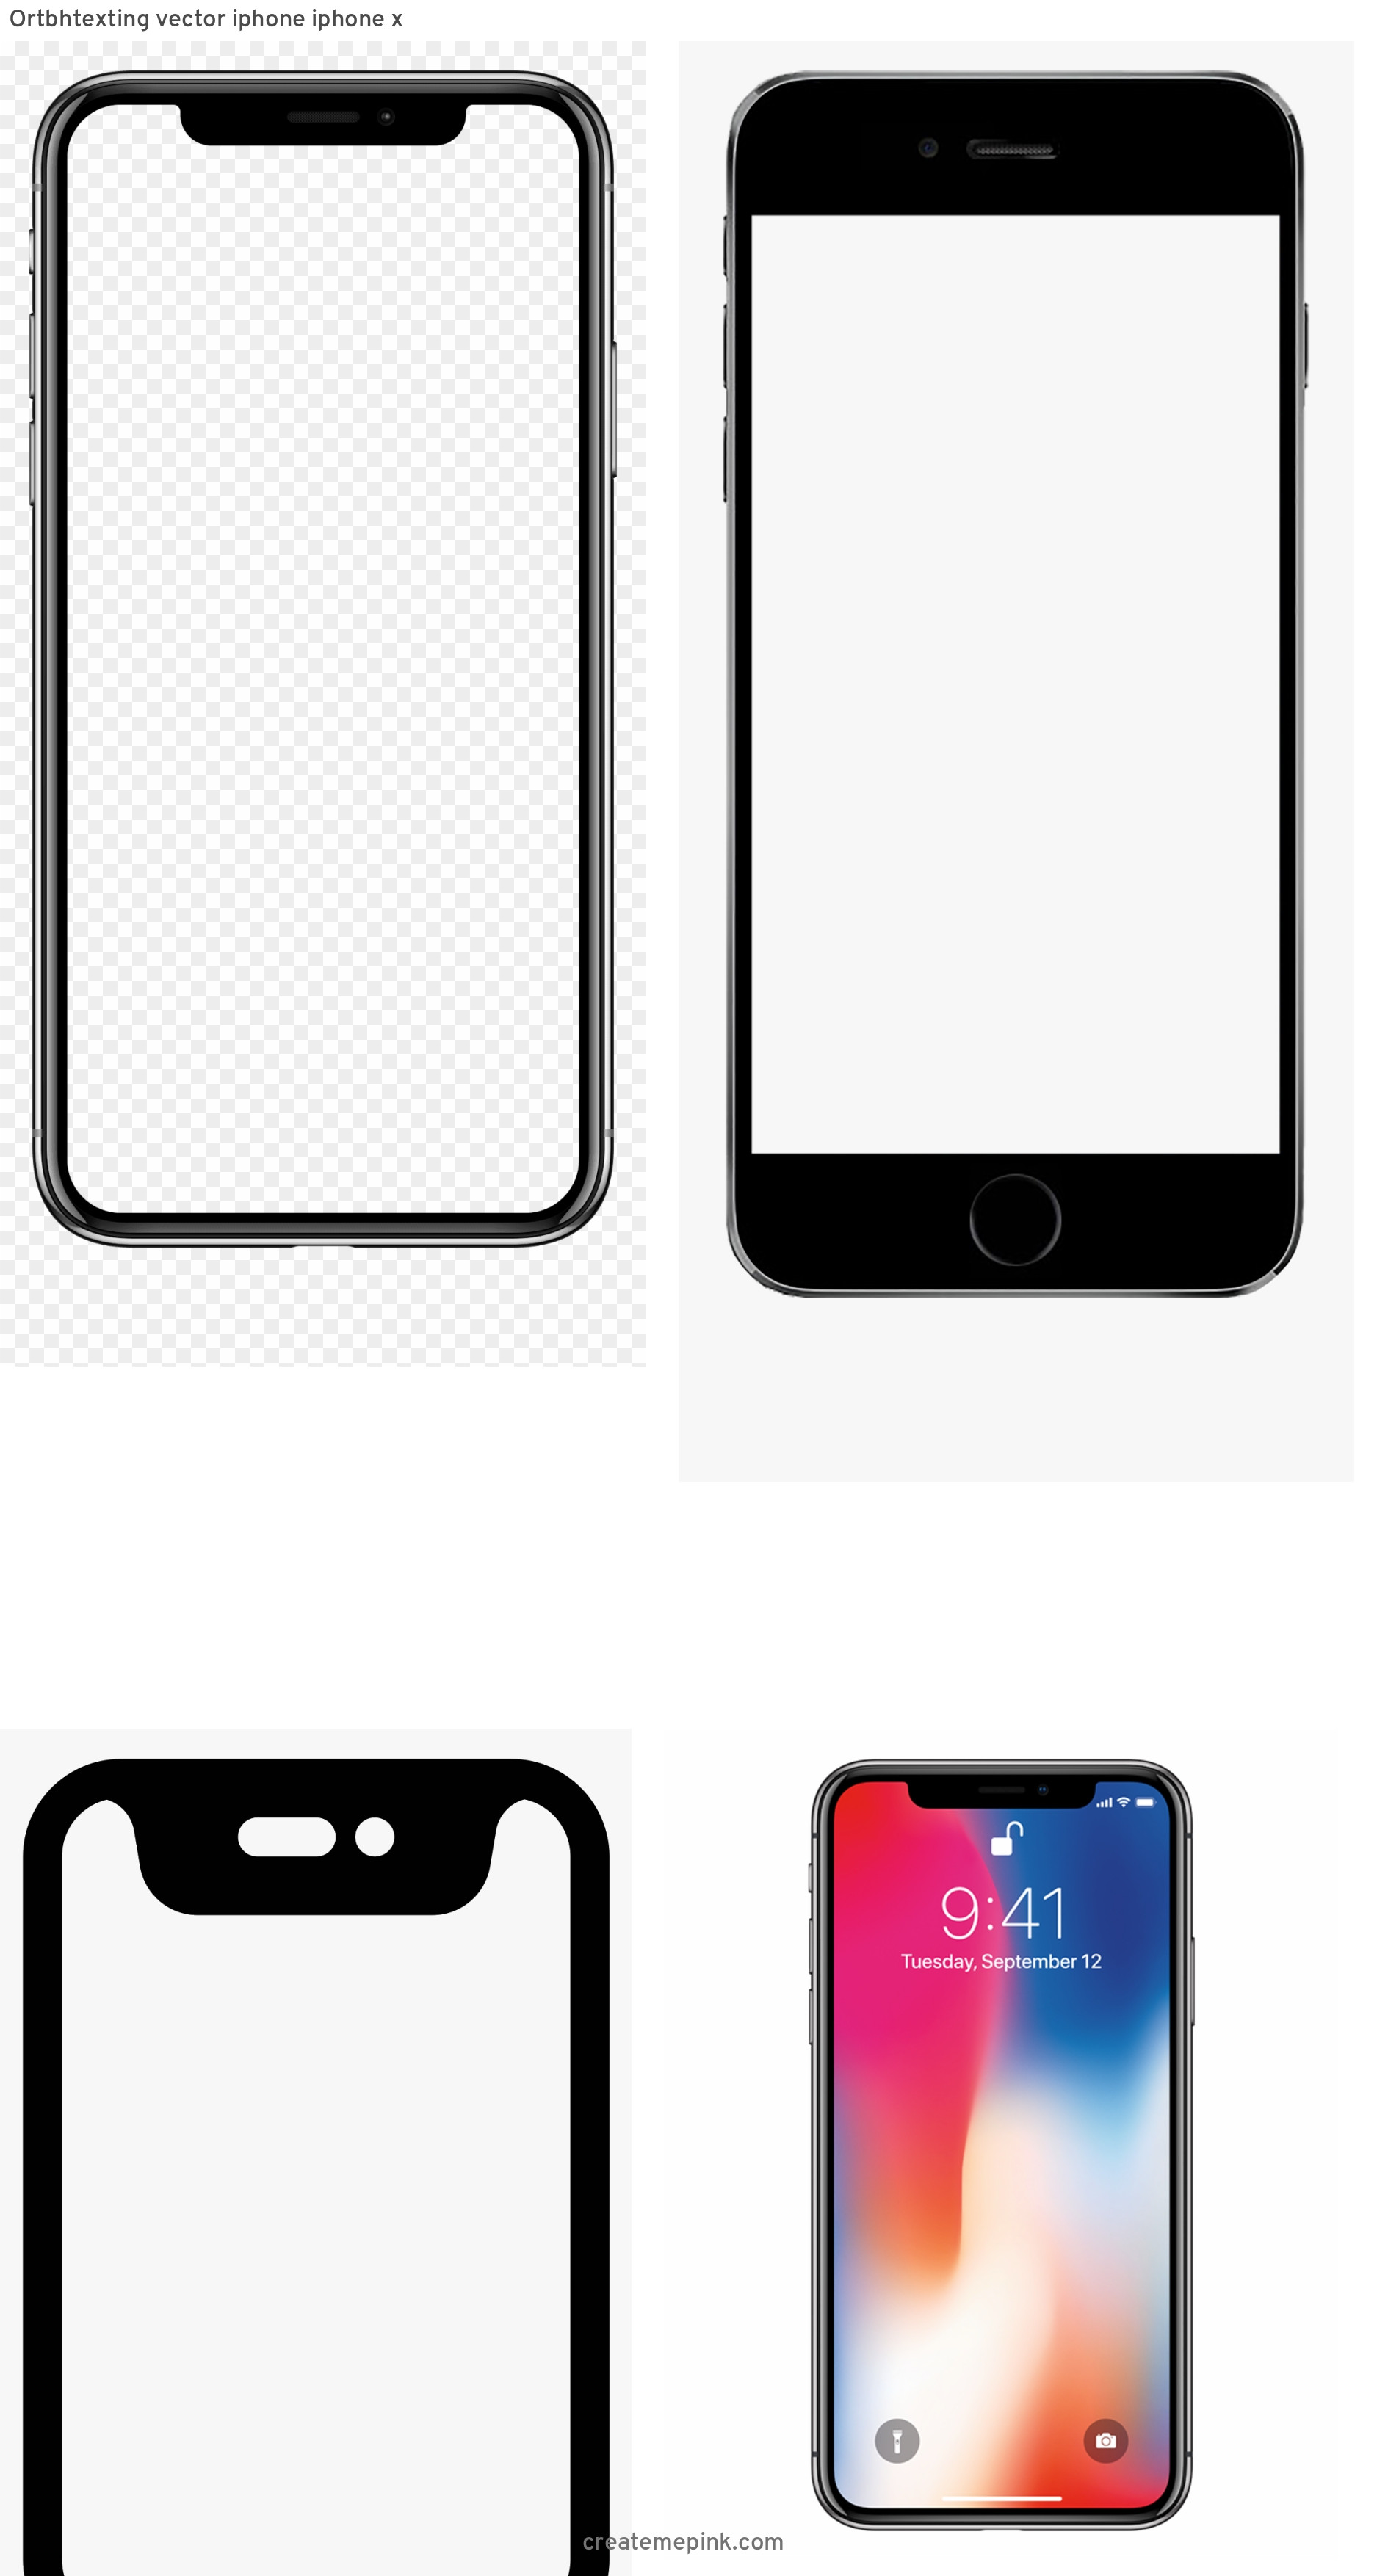 IPhone Vector Transparent Background: Ortbhtexting Vector Iphone Iphone X